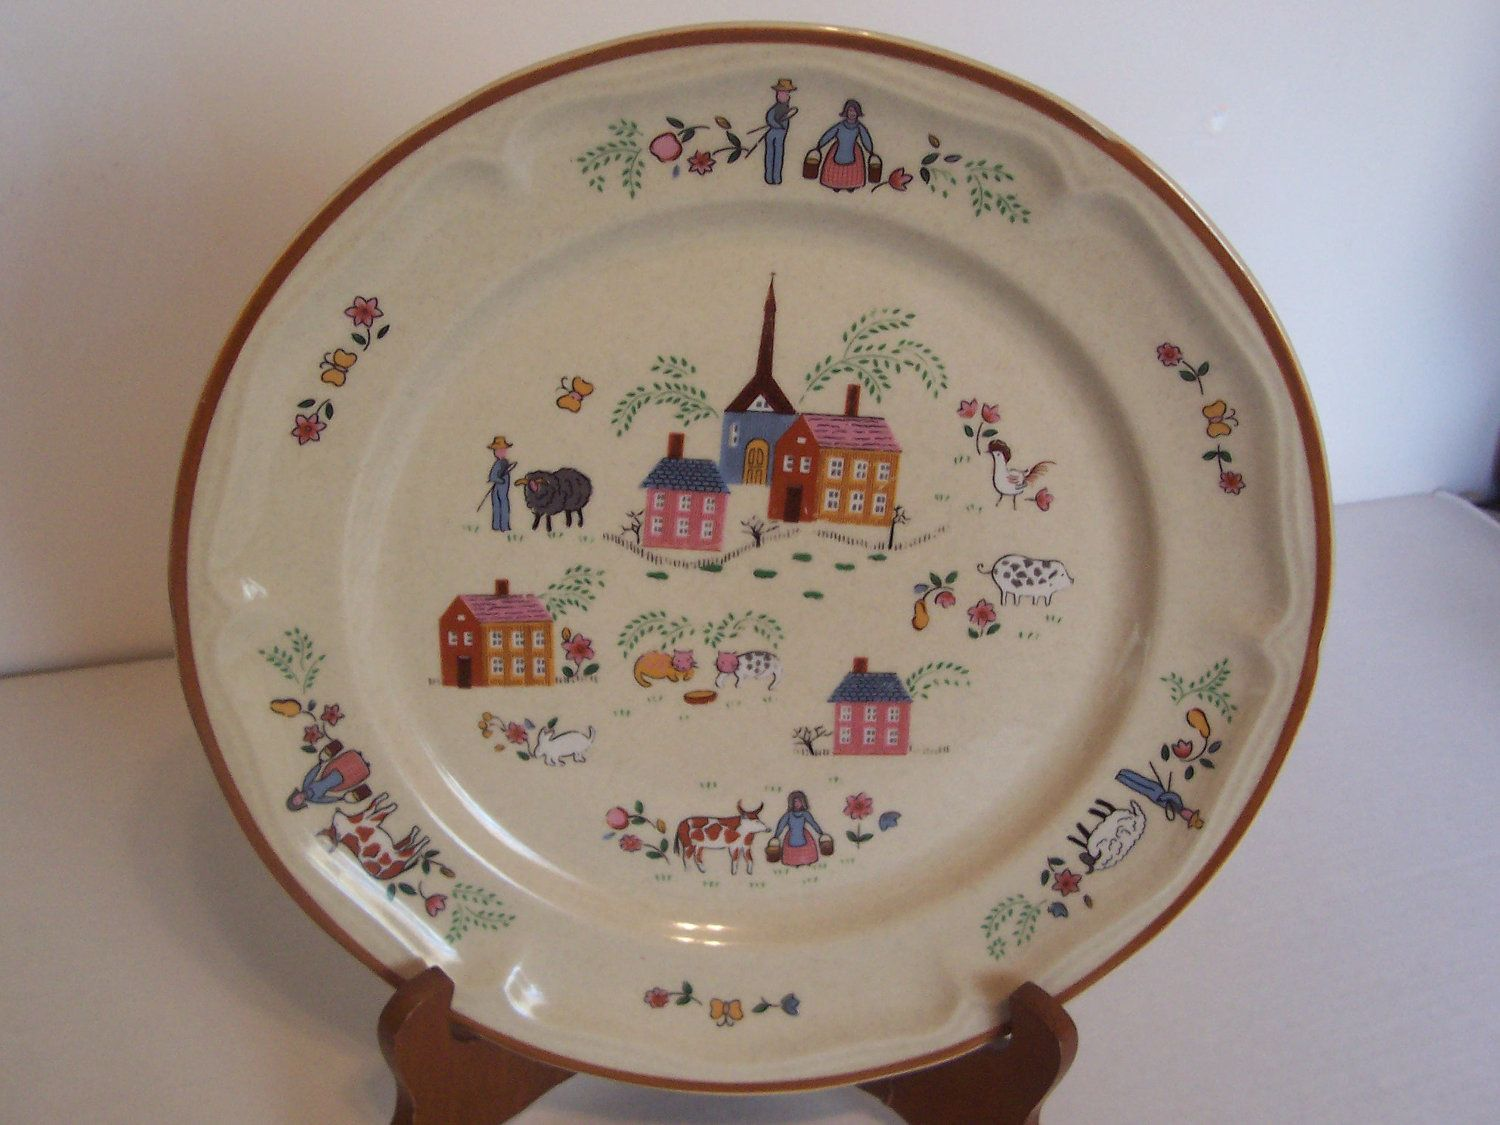 Dinner Plate Newcor Vintage Stoneware 1986 \ Our Country\  Amish Dutch Country Pattern Home Decor Dish Folk Art Farm Scene Replacement Dish & Our Country\